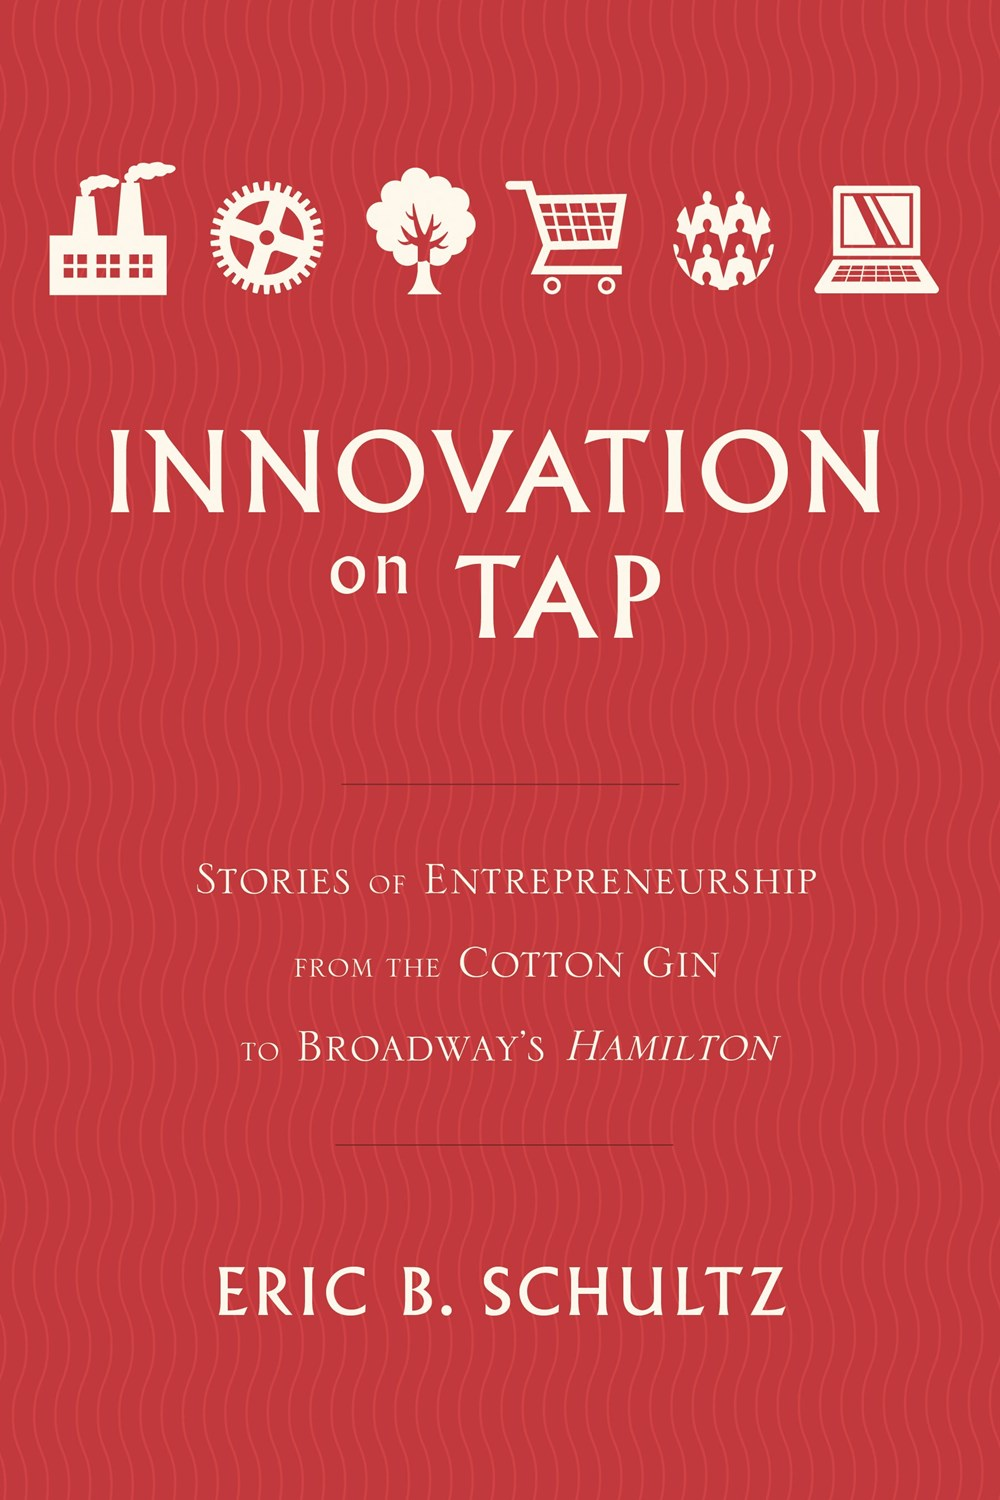 Innovation on Tap Stories of Entrepreneurship from the Cotton Gin to Broadway's Hamilton